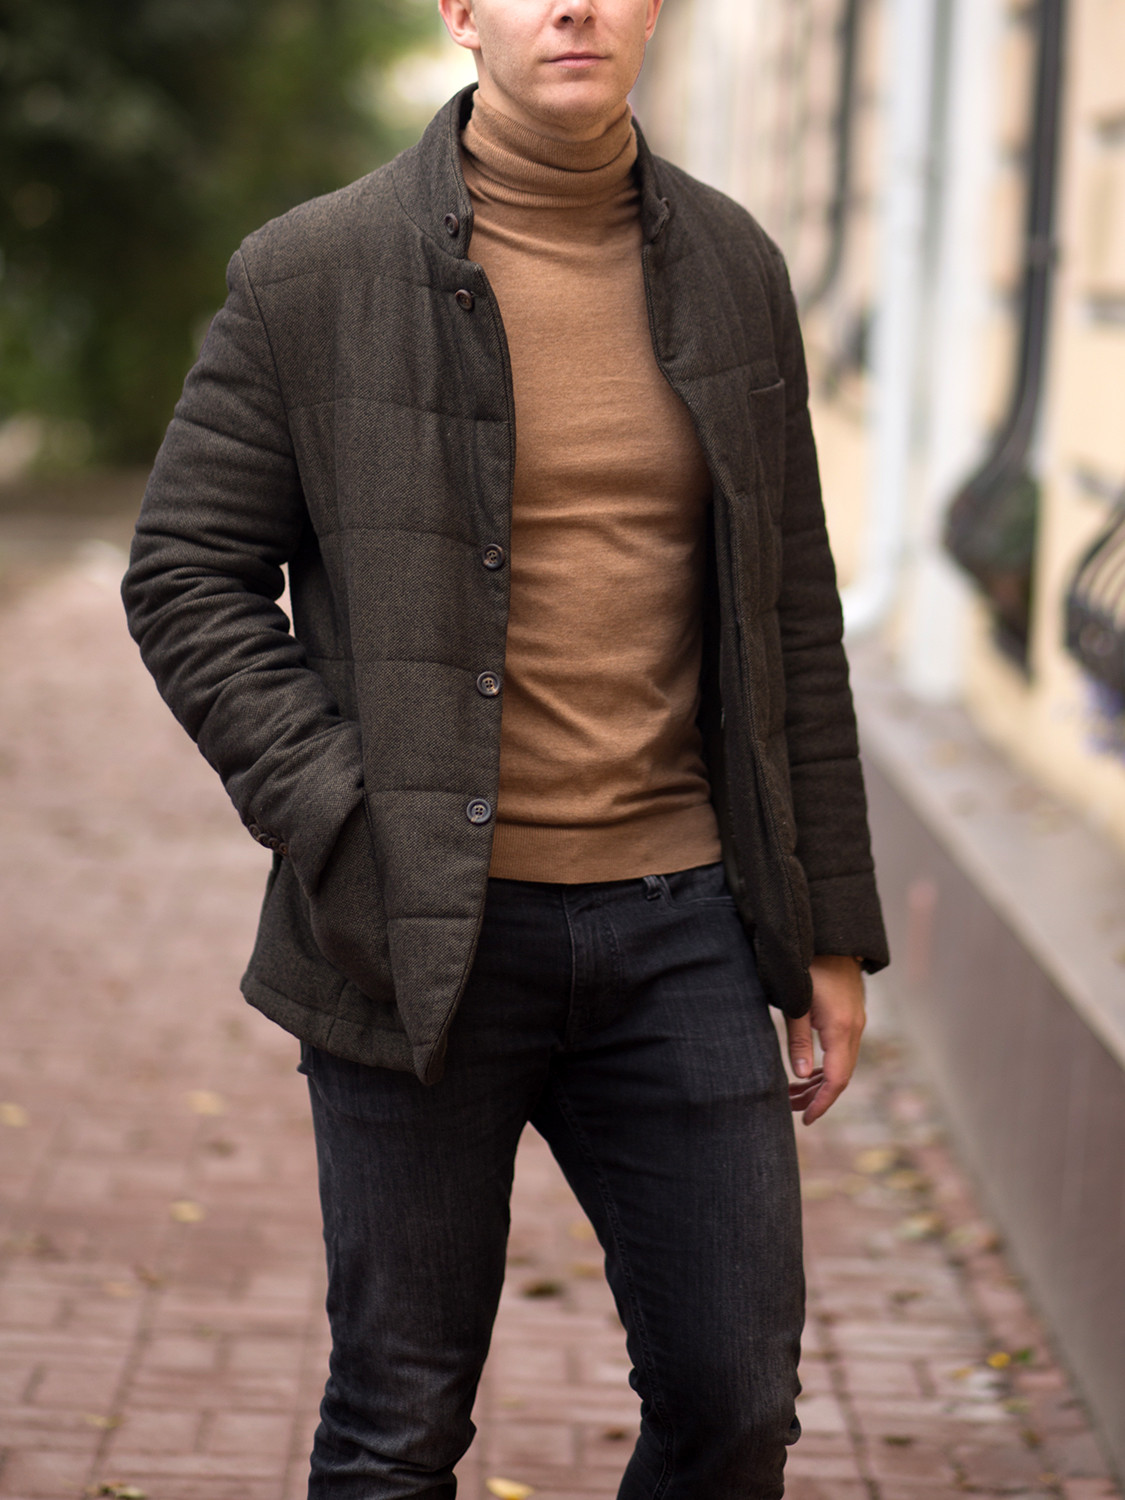 Men's outfit idea for 2021 with lightweight rollneck jumper, black jeans, brown chukka boots. Suitable for autumn and winter.